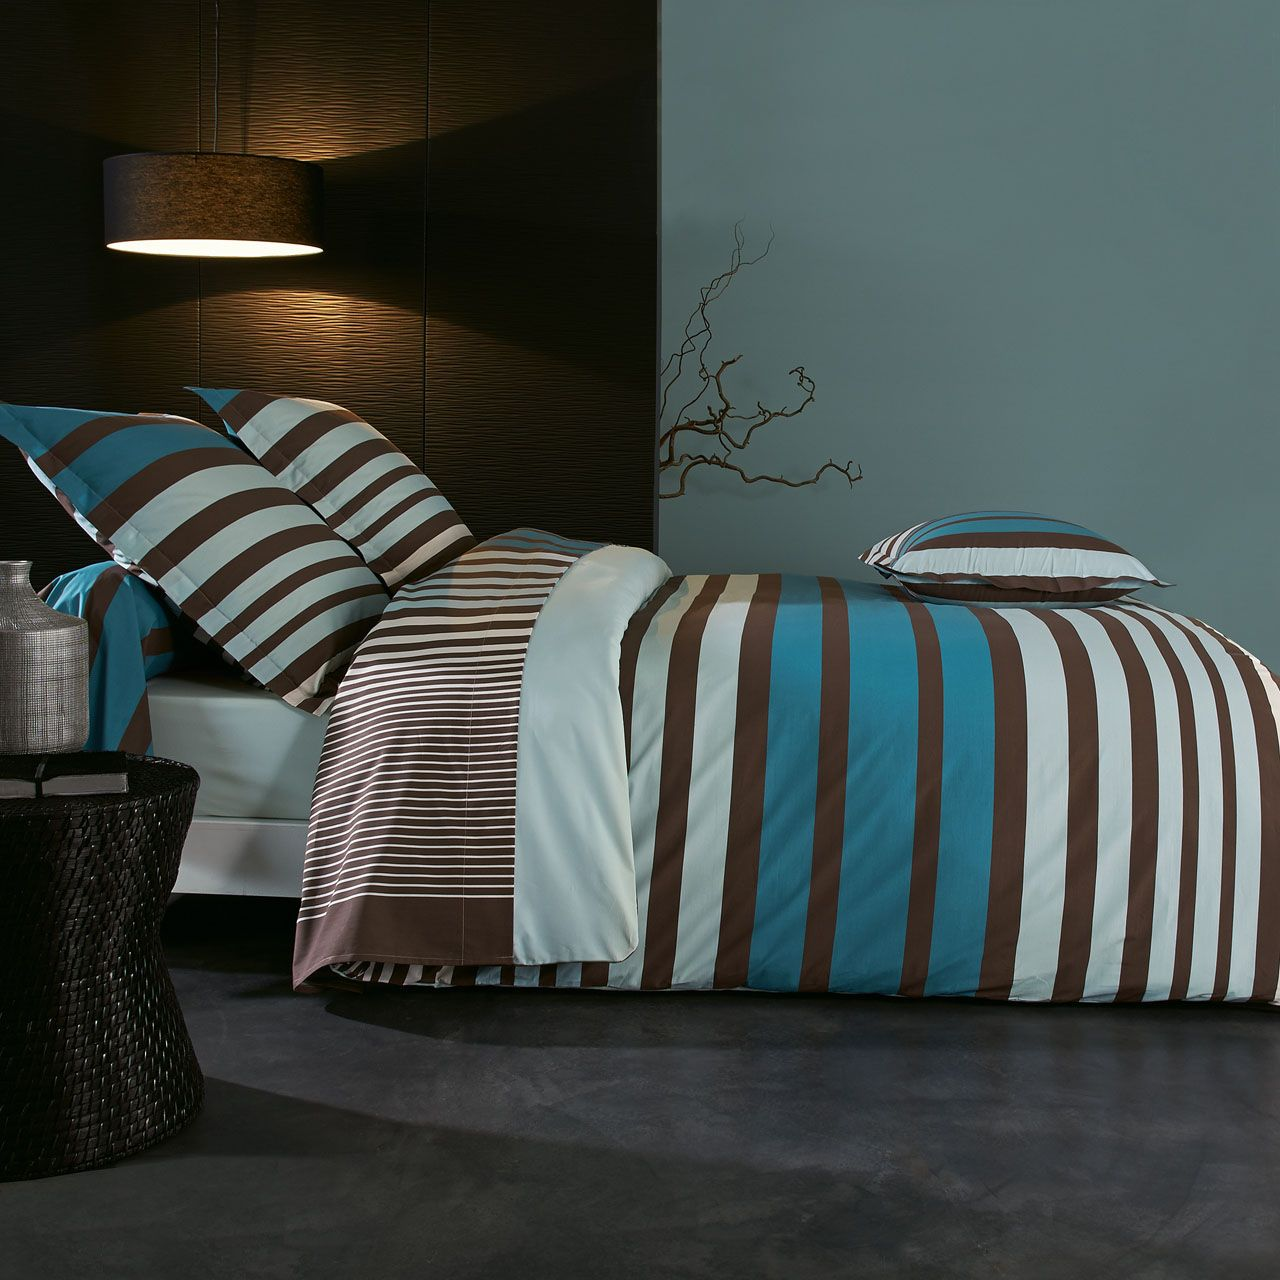 drap housse percale stripe bleu 140x190 tradilinge. Black Bedroom Furniture Sets. Home Design Ideas